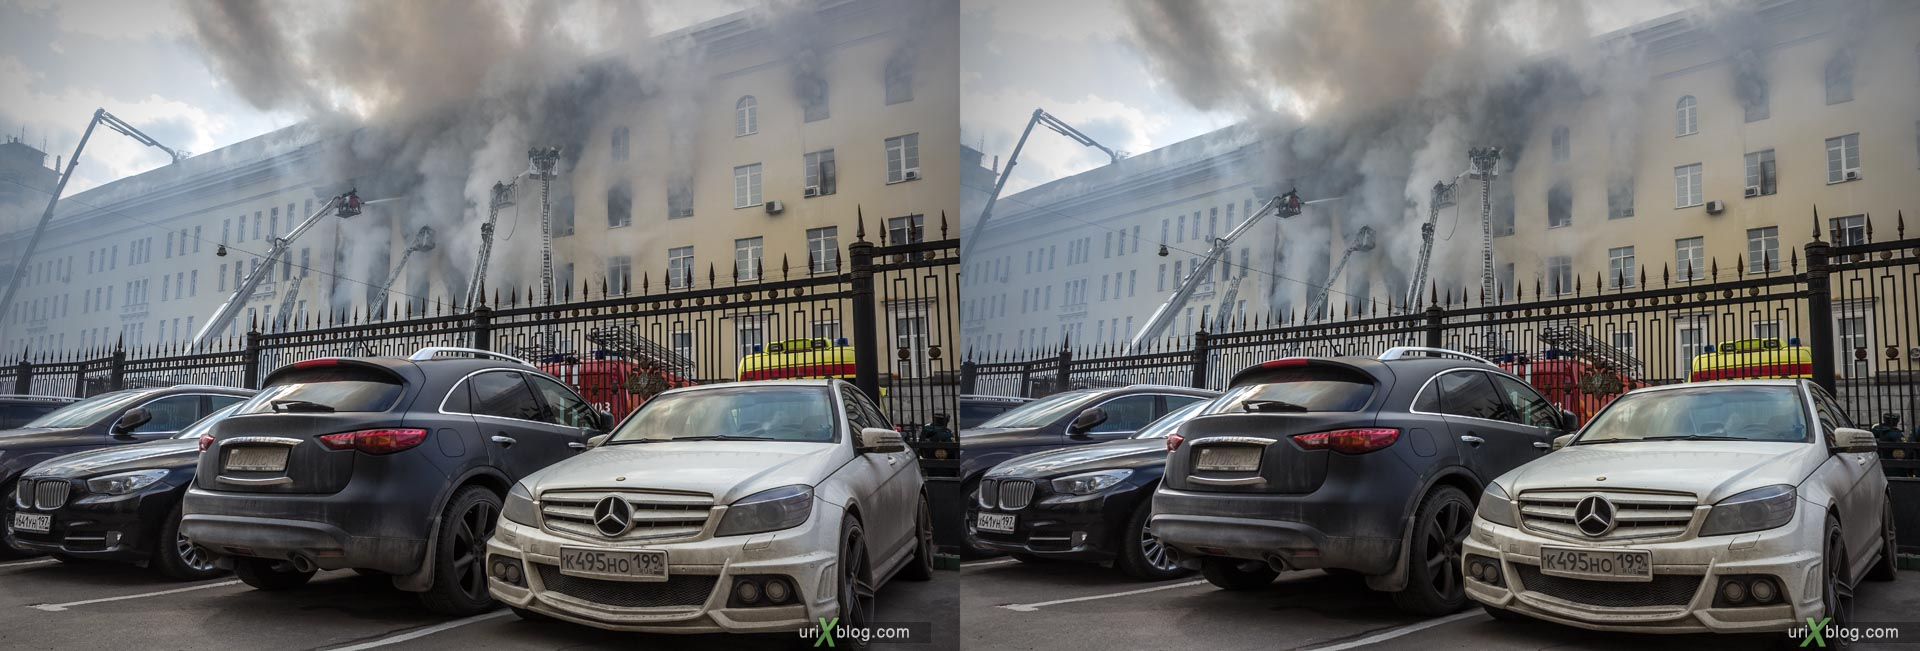 fire, smoke, accident, Ministry of Defense building, Bolshoy Znamensky Lane, Moscow, Russia, city, 3D, stereo pair, cross-eyed, crossview, cross view stereo pair, stereoscopic, 2016